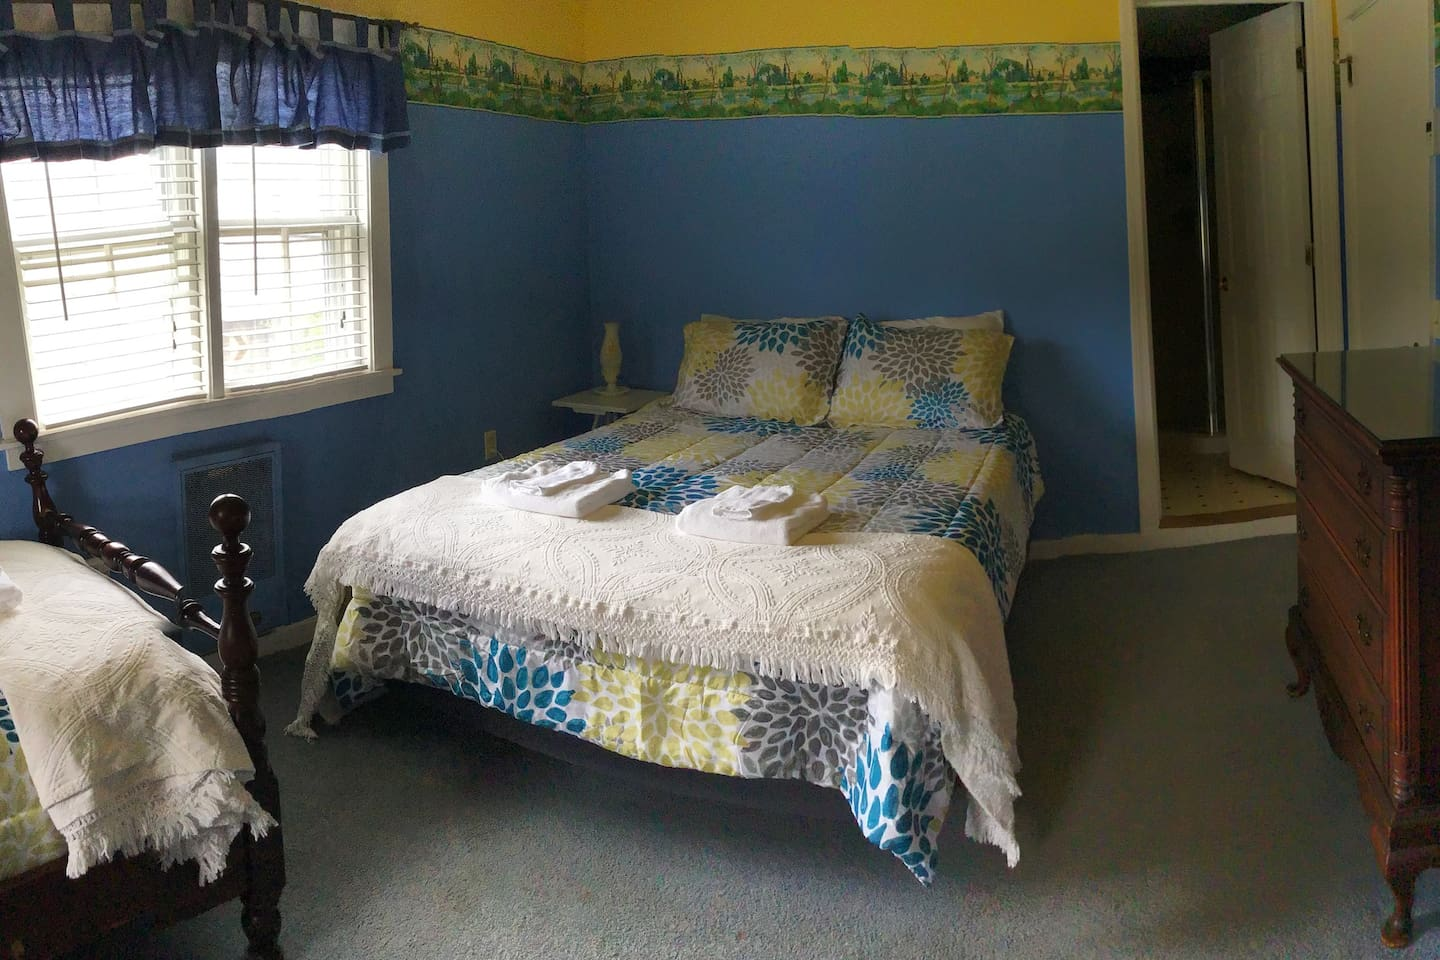 Newport Sunshine sports 1 fullsize bed and 1 twin size bed. It is one of our larger rooms with lots of extra floor space.